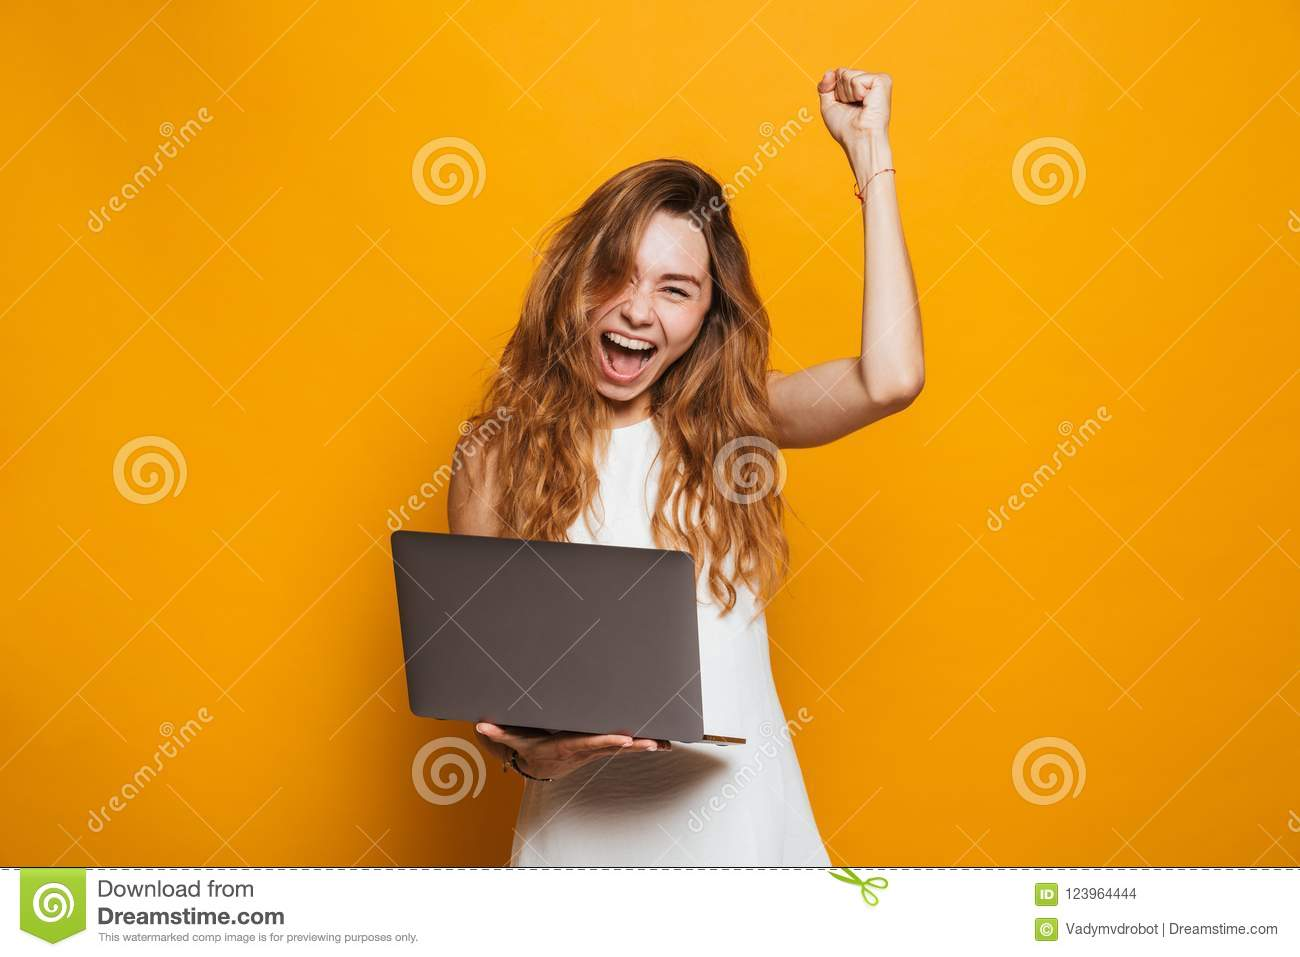 Portrait of a happy young girl holding laptop computer